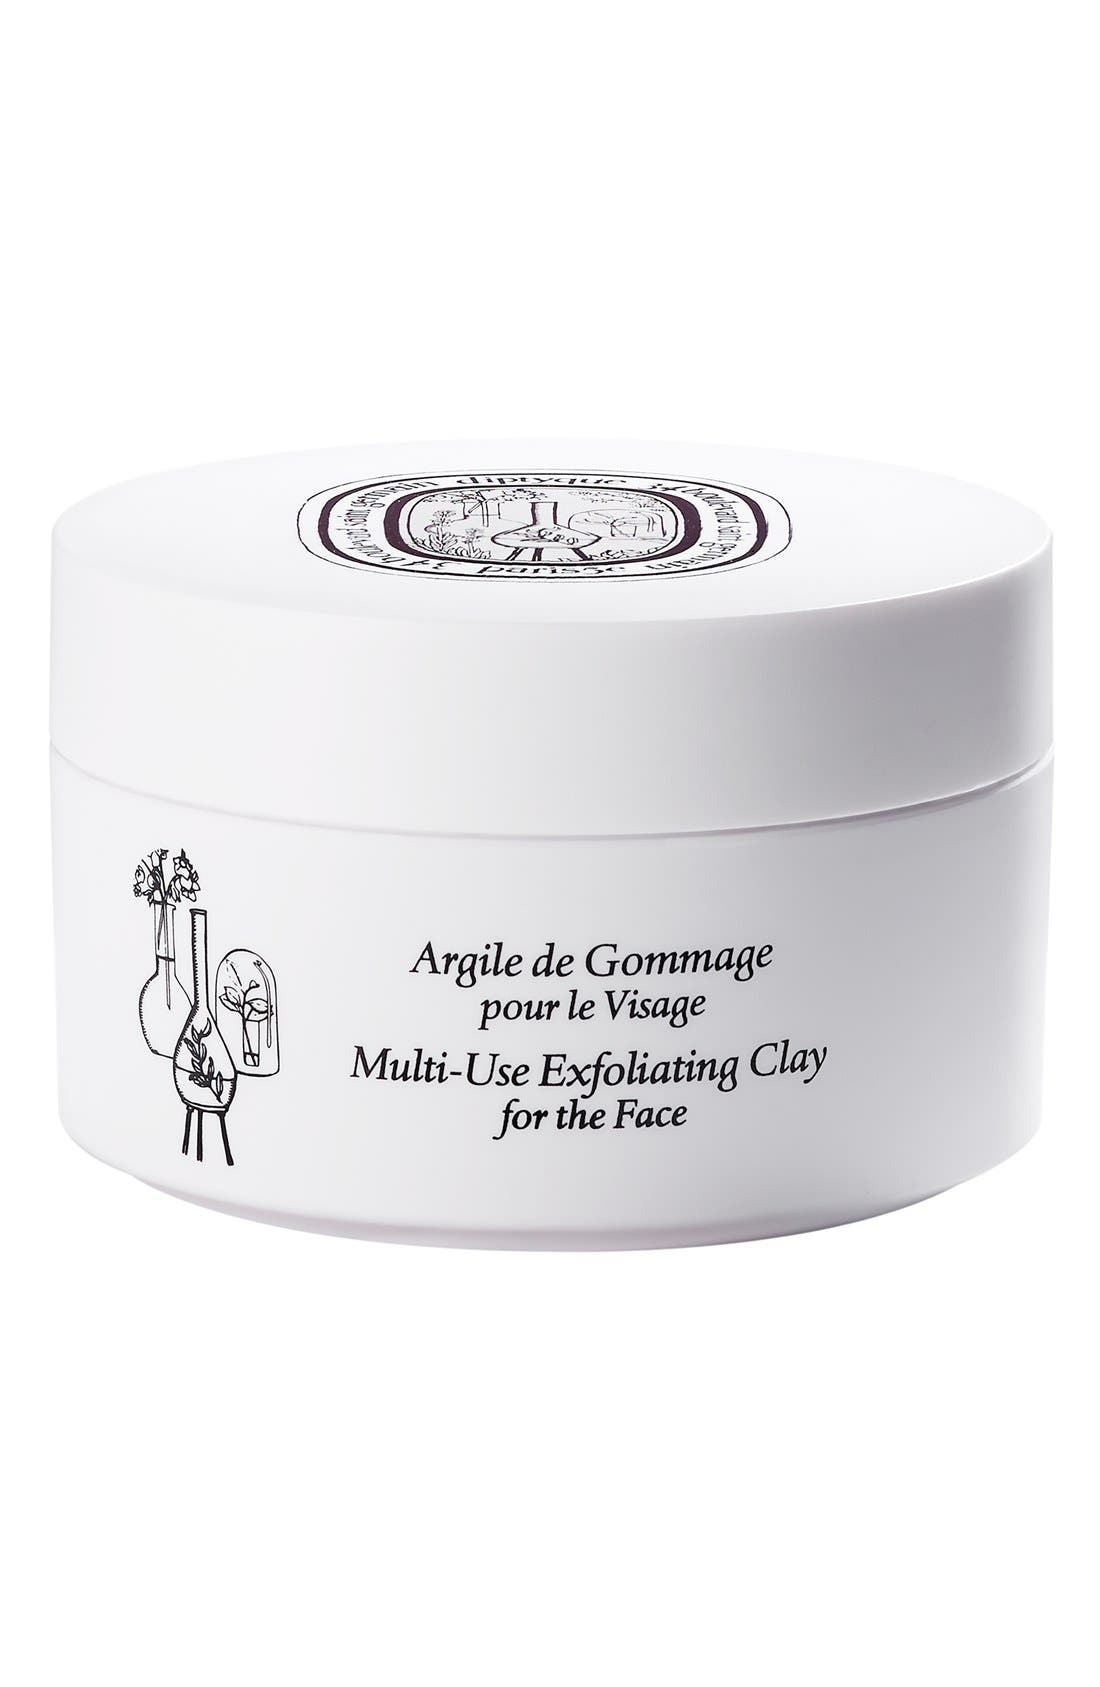 diptyque Multi-Use Exfoliating Clay for the Face